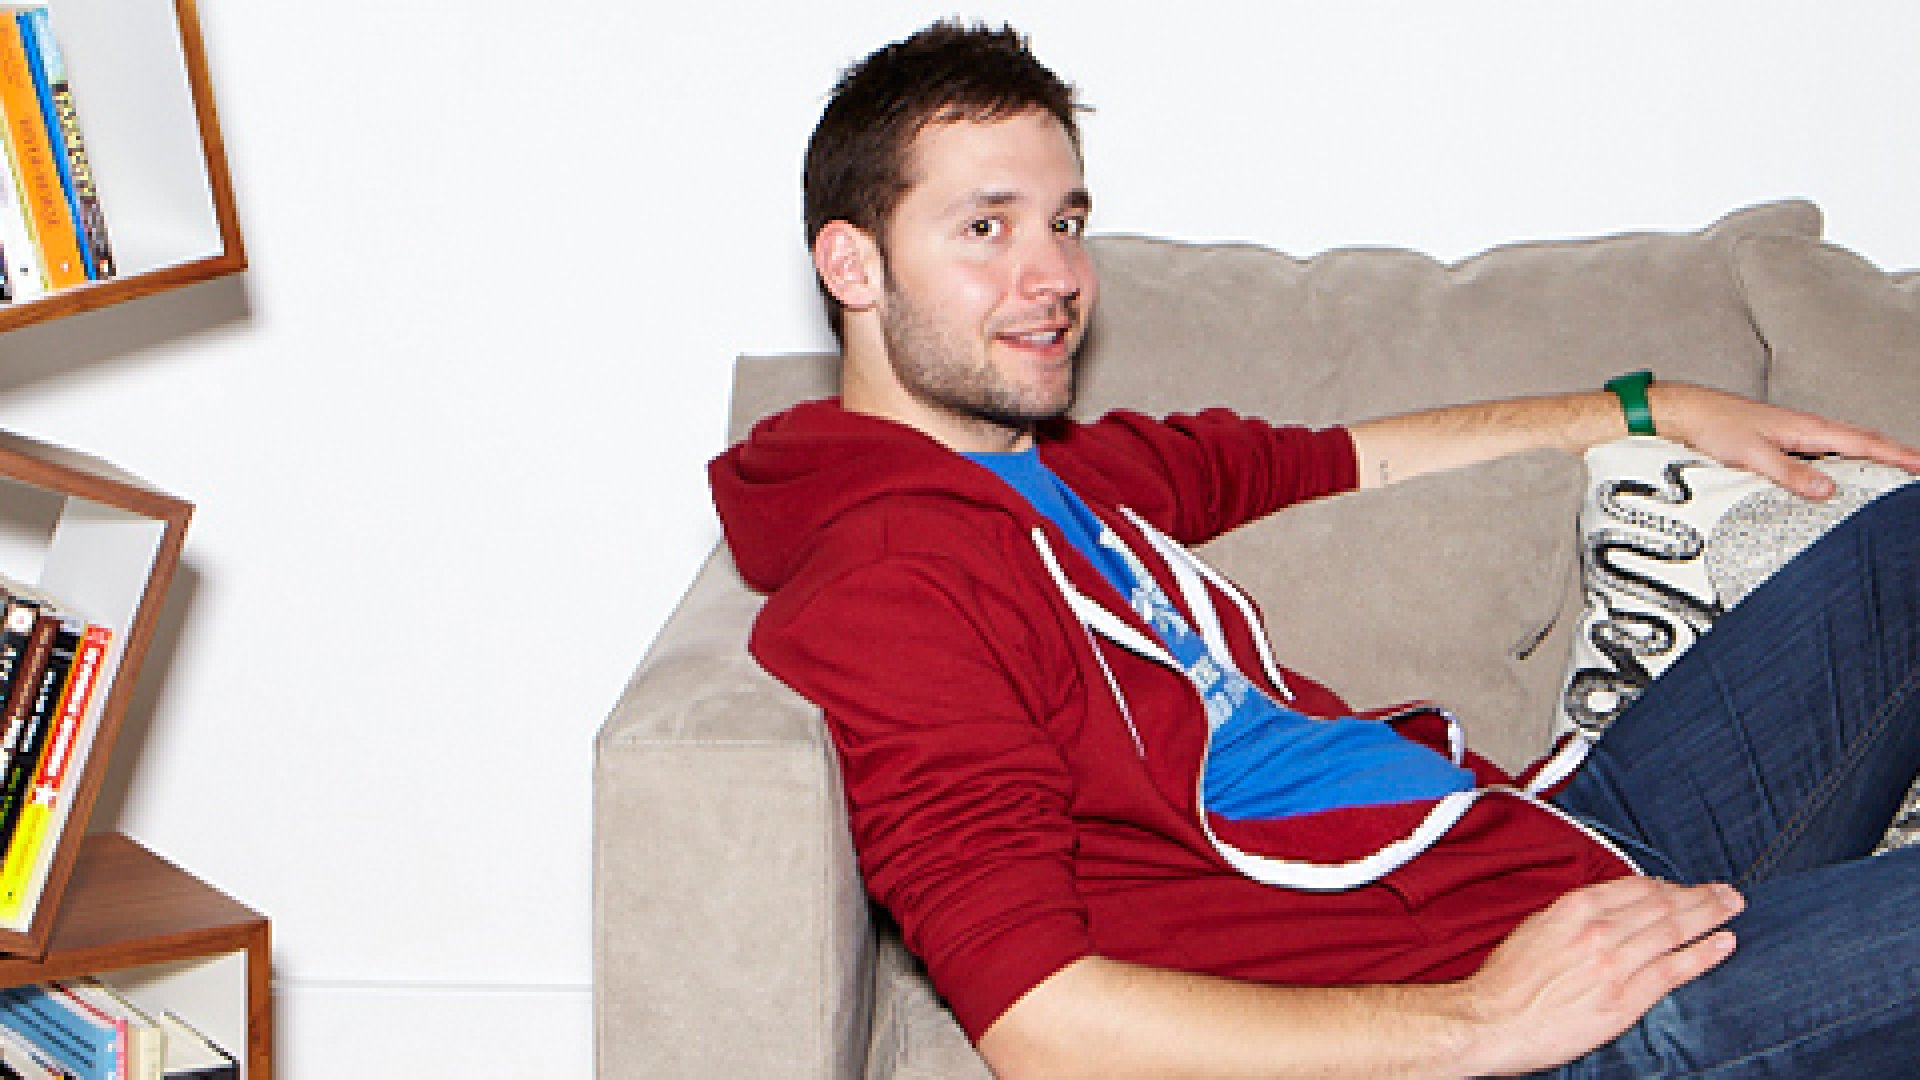 """""""I want to stay hungry,"""" says Alexis Ohanian. """"I really believe my resources are best used to help projects that make the world suck less."""""""